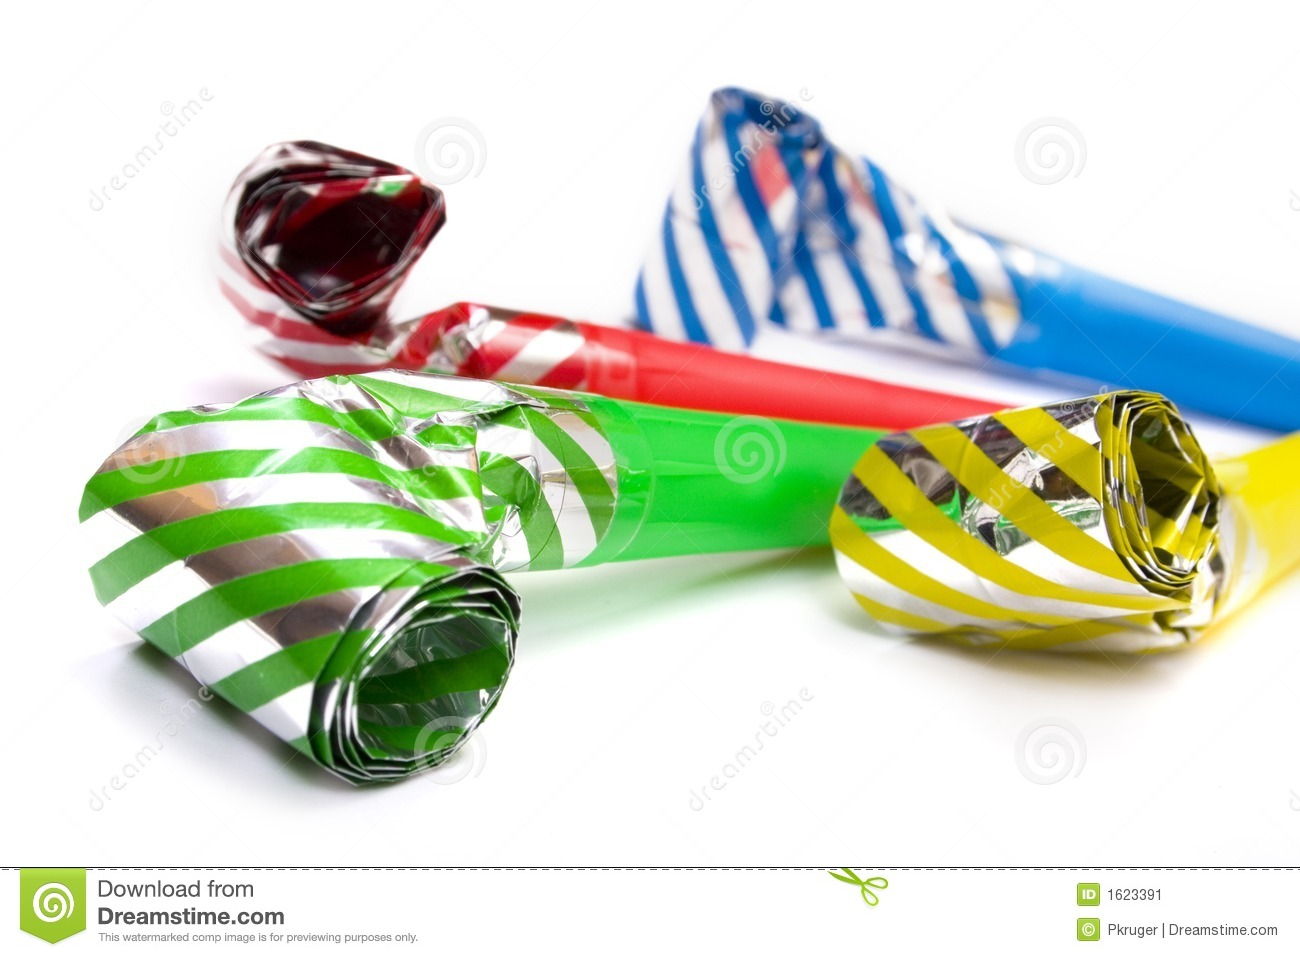 Christmas Eve Dress - Party whistle stock image image 1623391